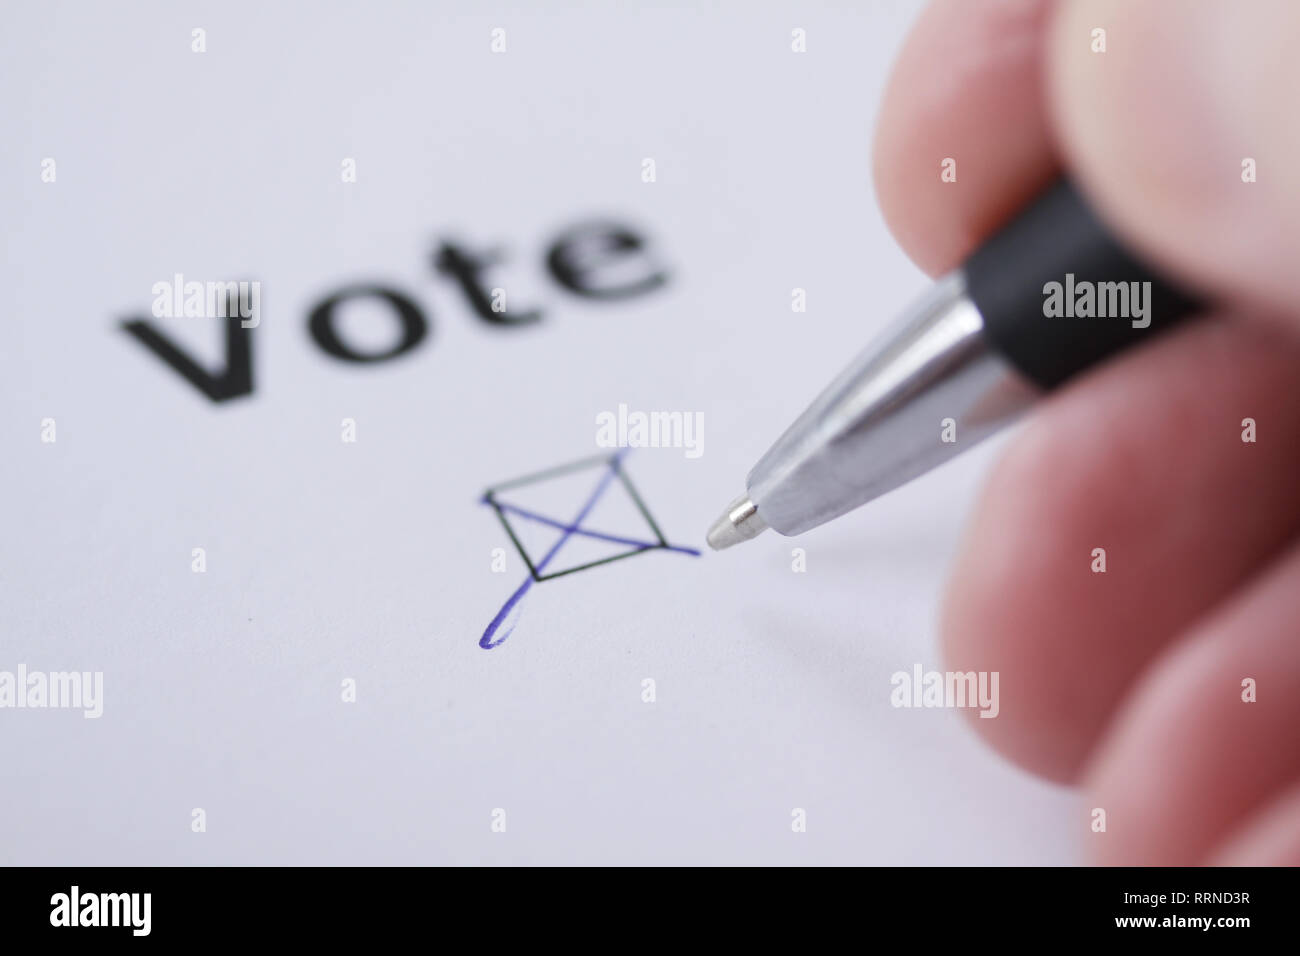 Hand of man voting - sets mark in check box with pen - hand, worrd and pen delibetrately blurred - Stock Image